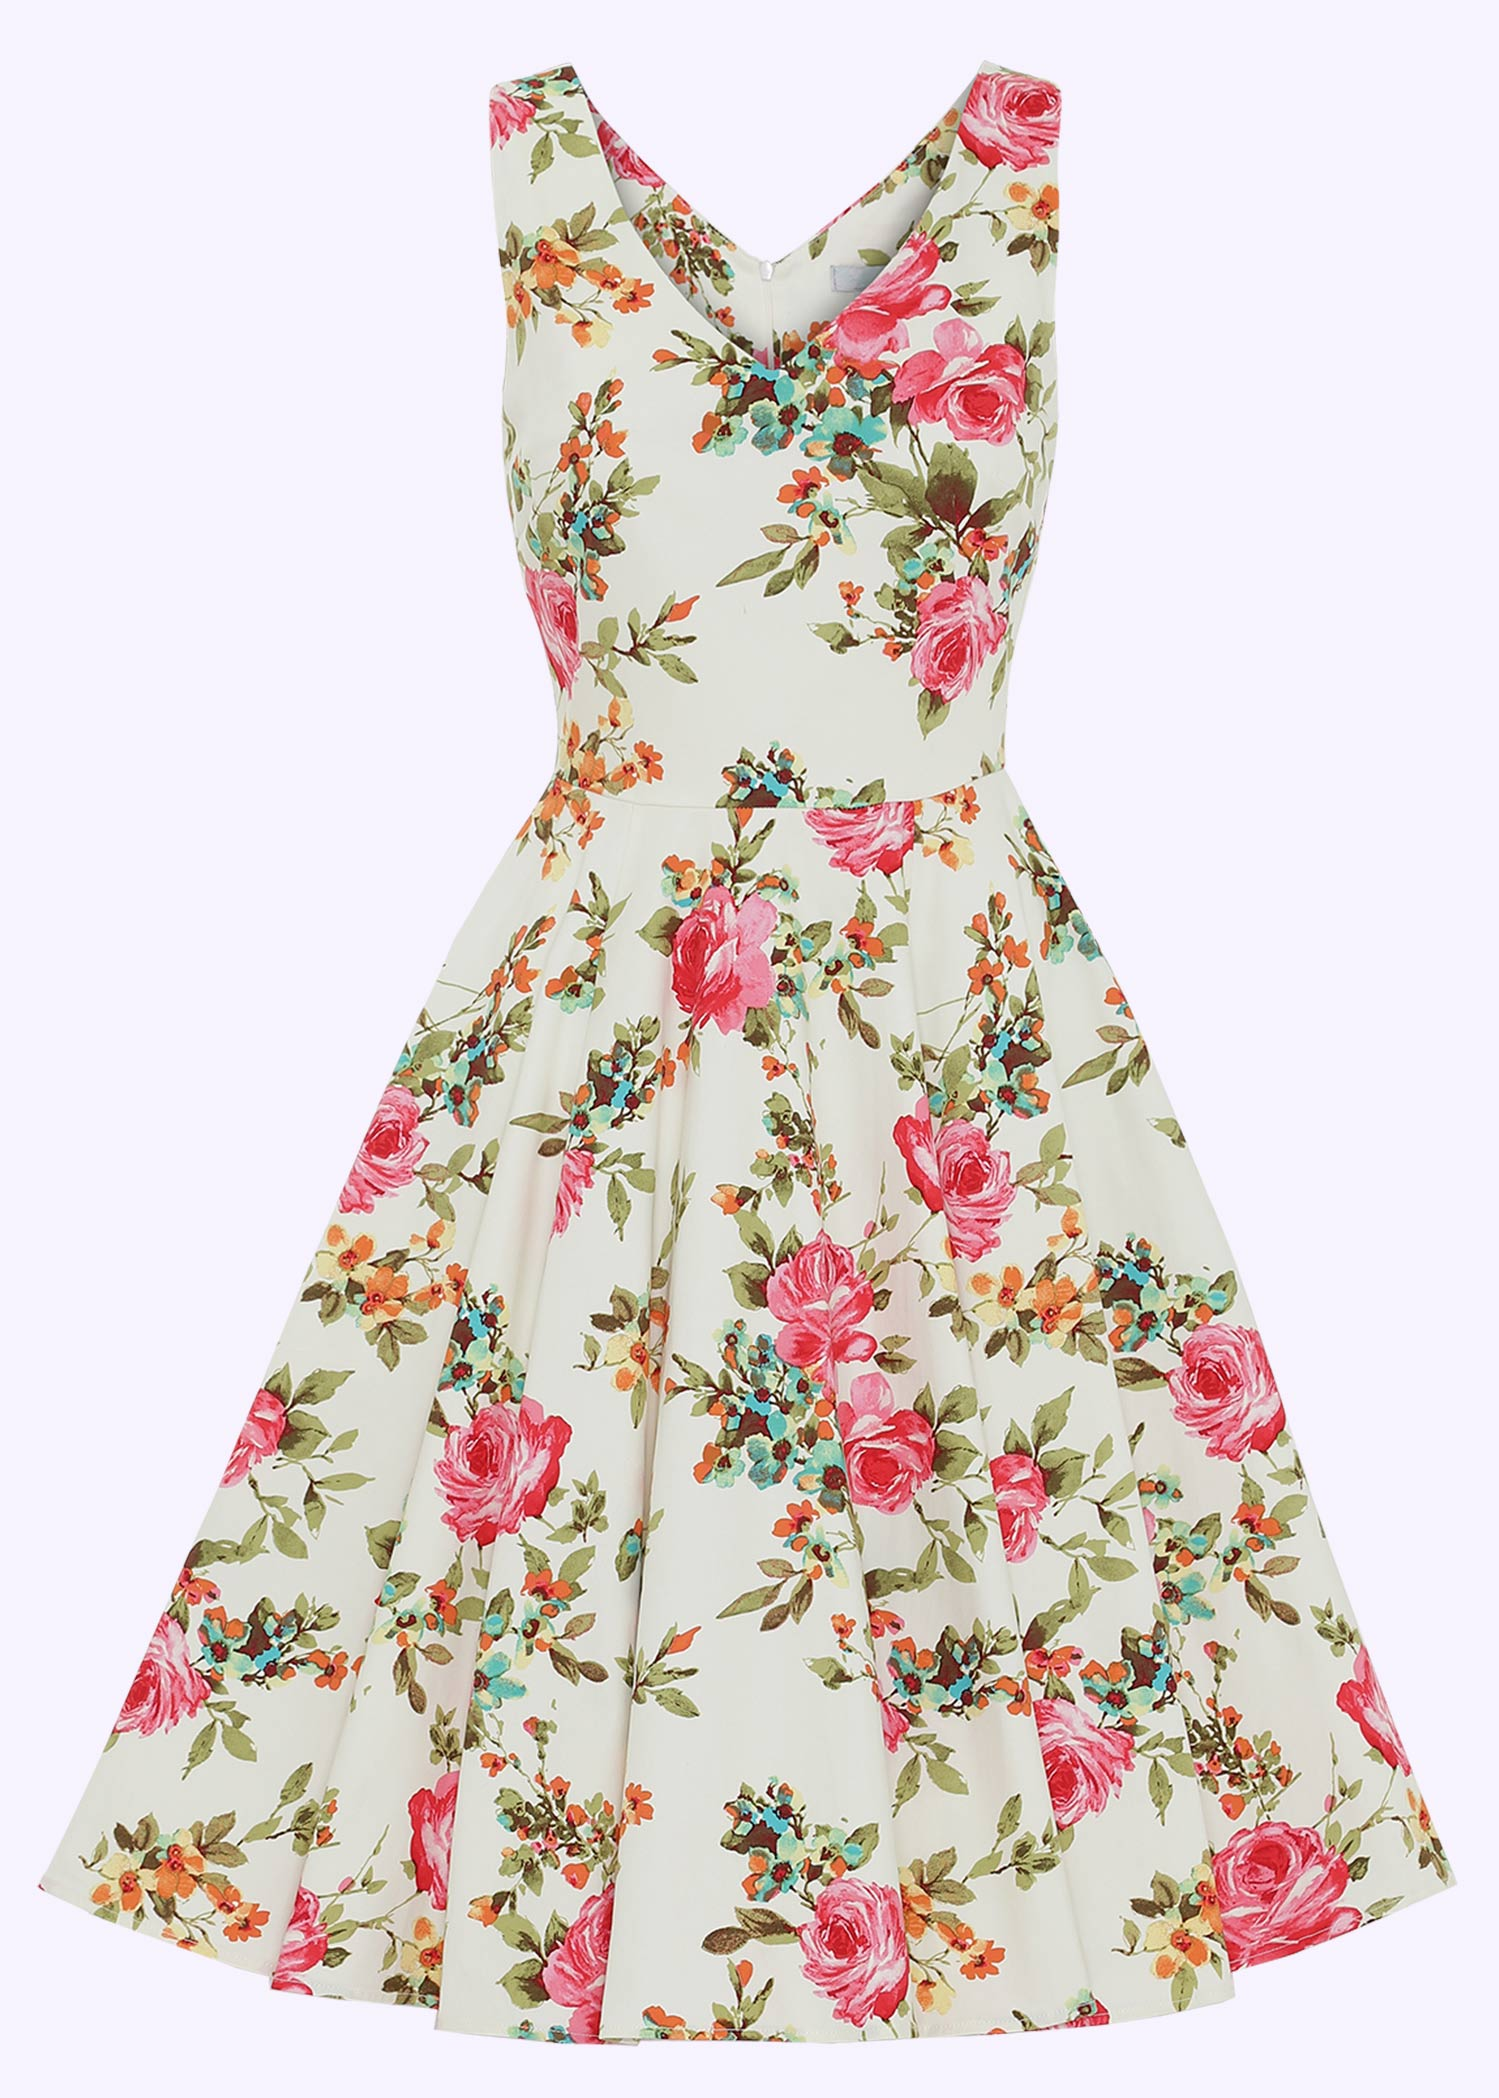 White swing dress with flowers for the bridesmaid